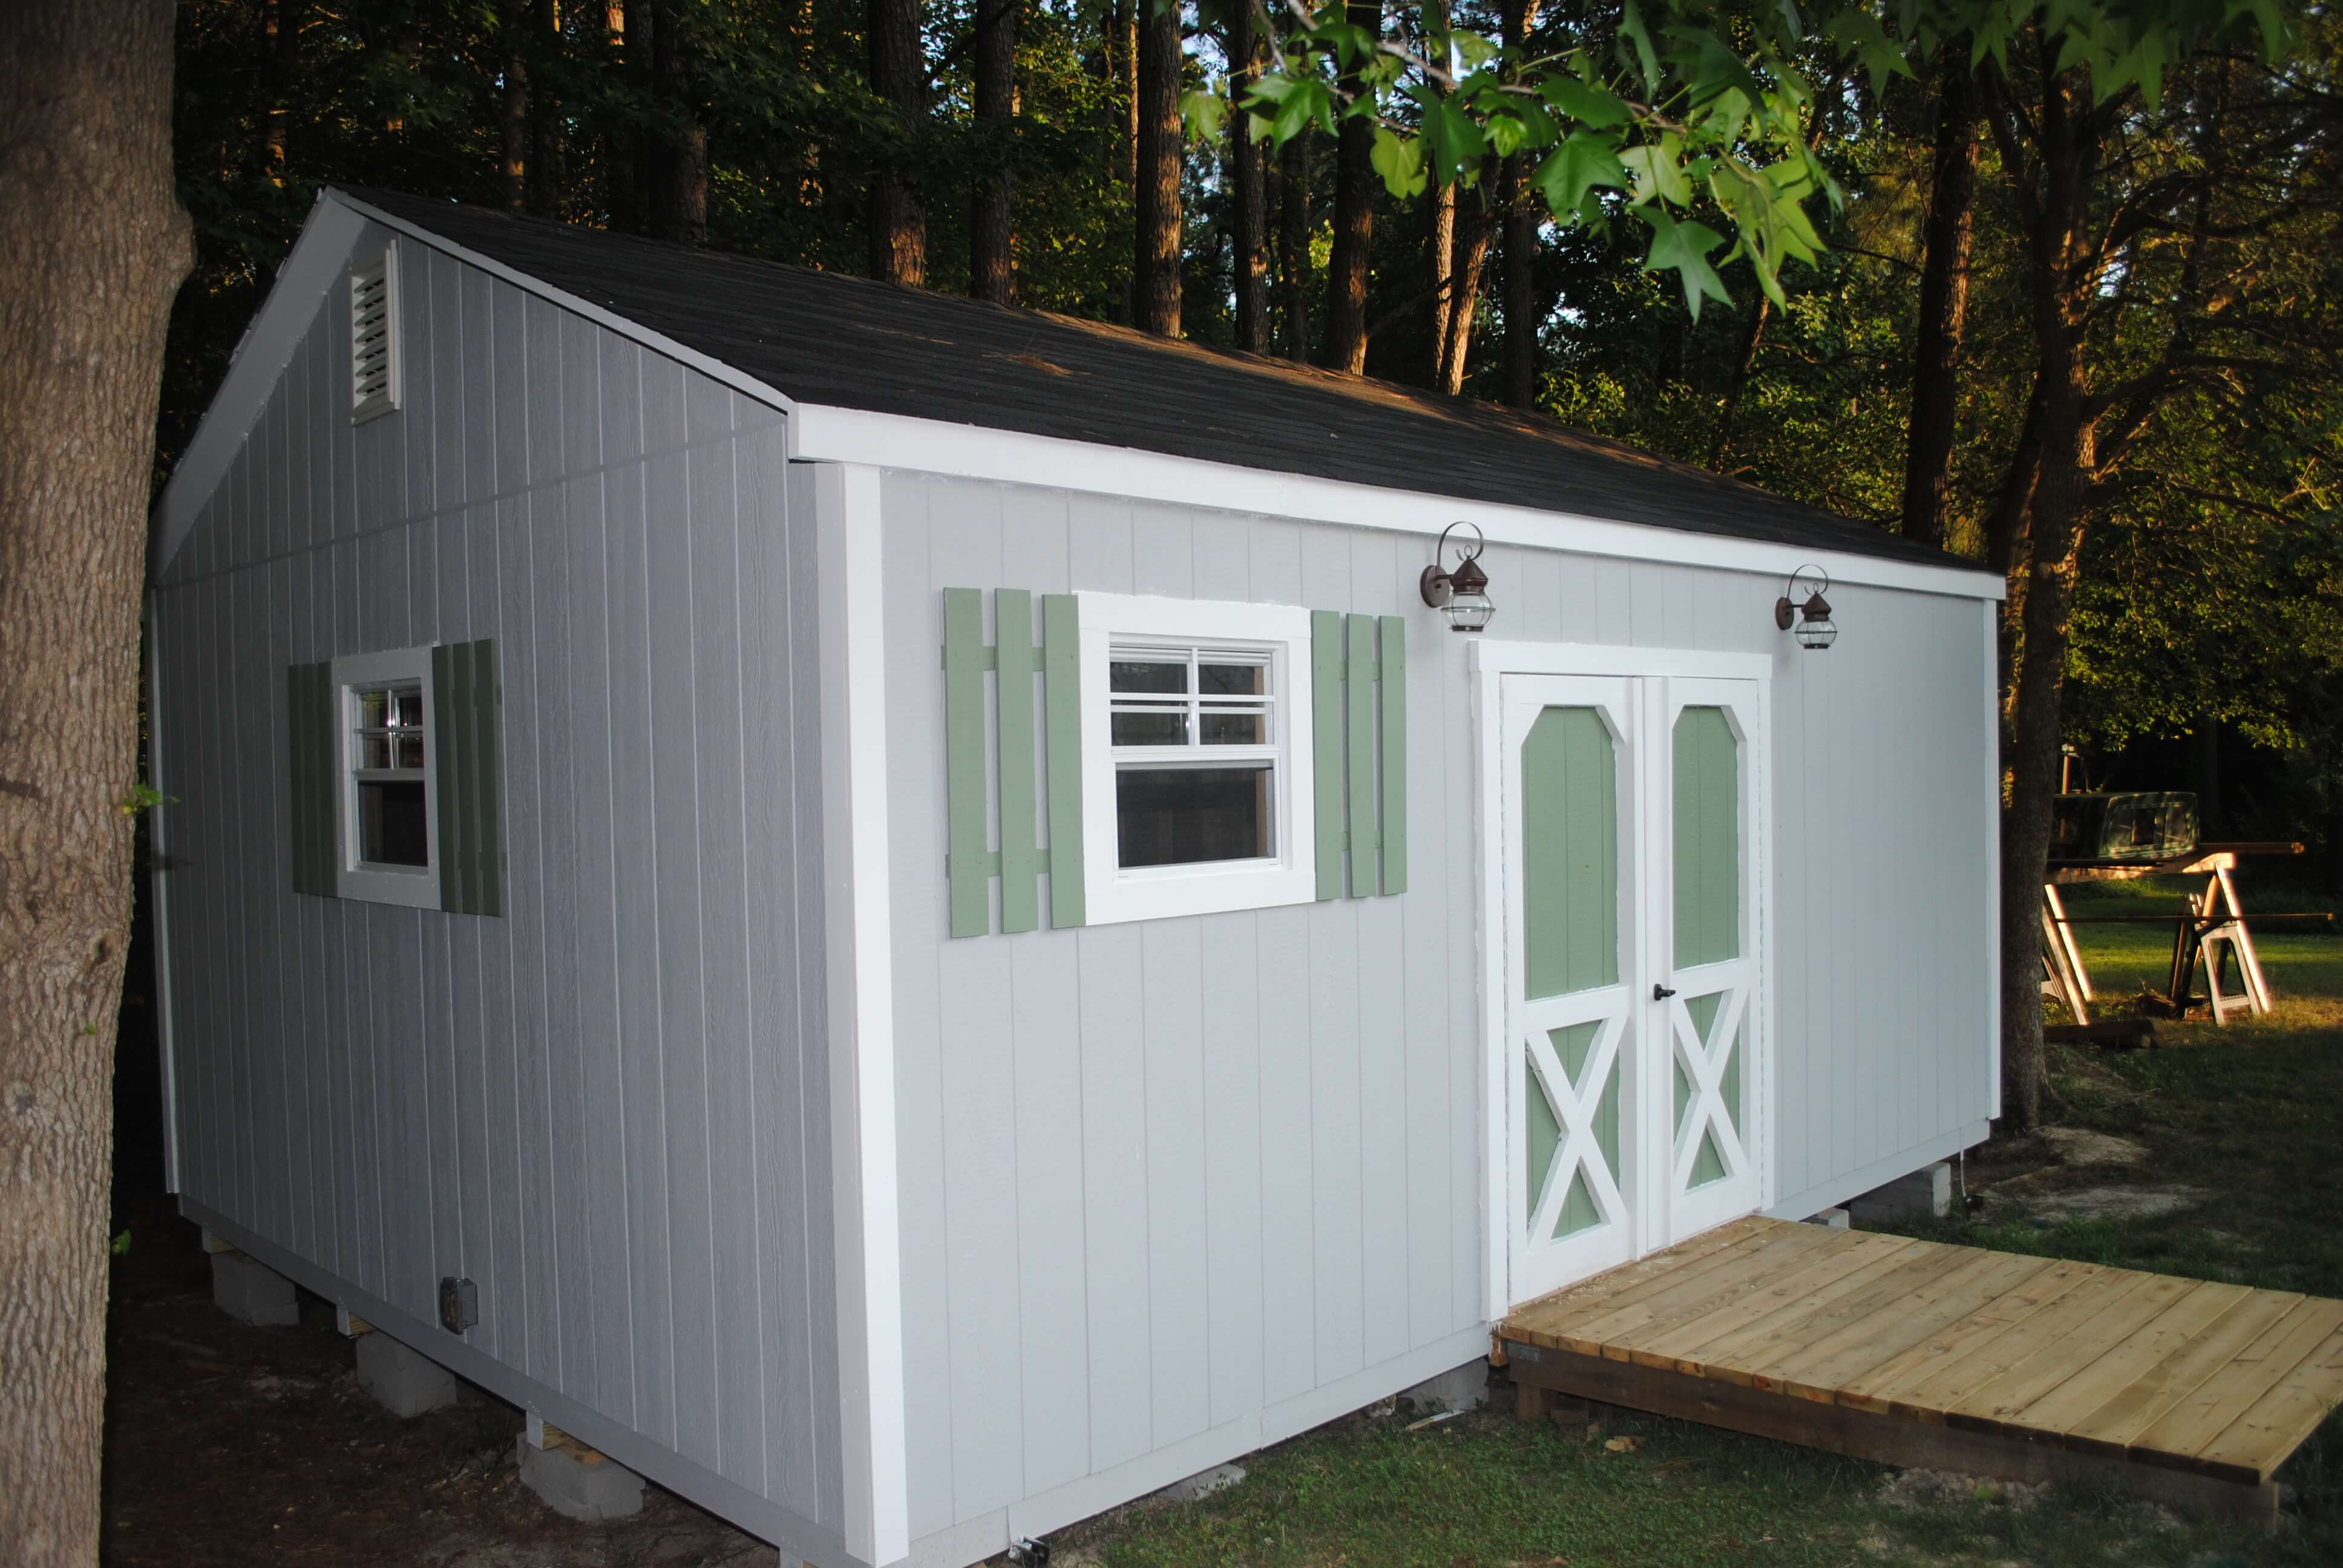 Stainless Steel Sheds : Storage sheds raleigh nc type pixelmari